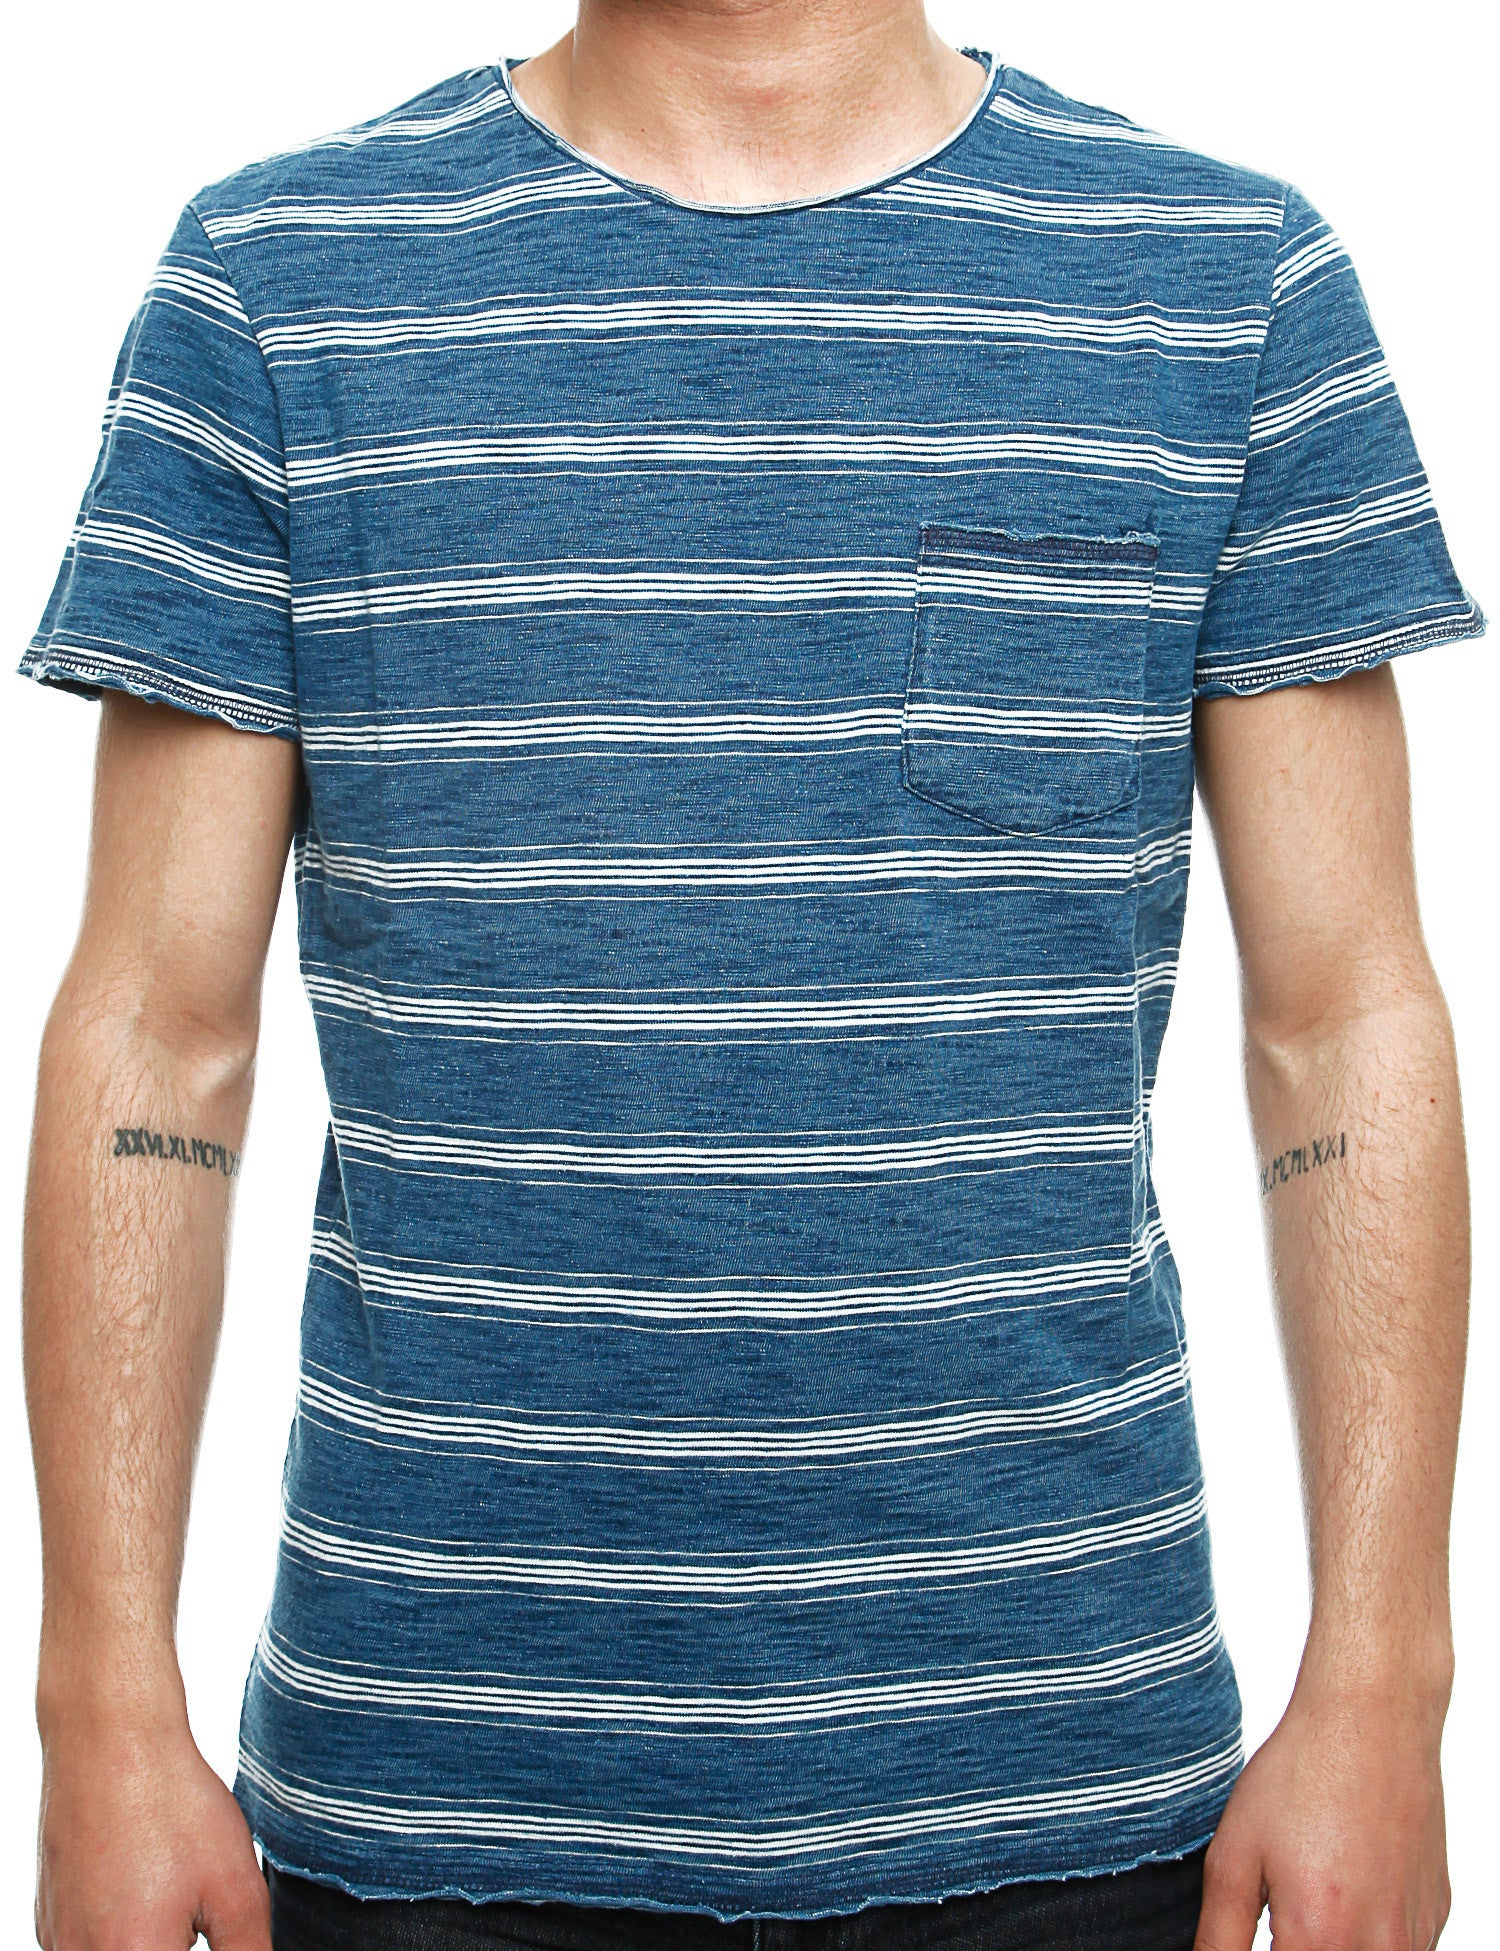 Blend of America T-Shirt 20700733 Navy